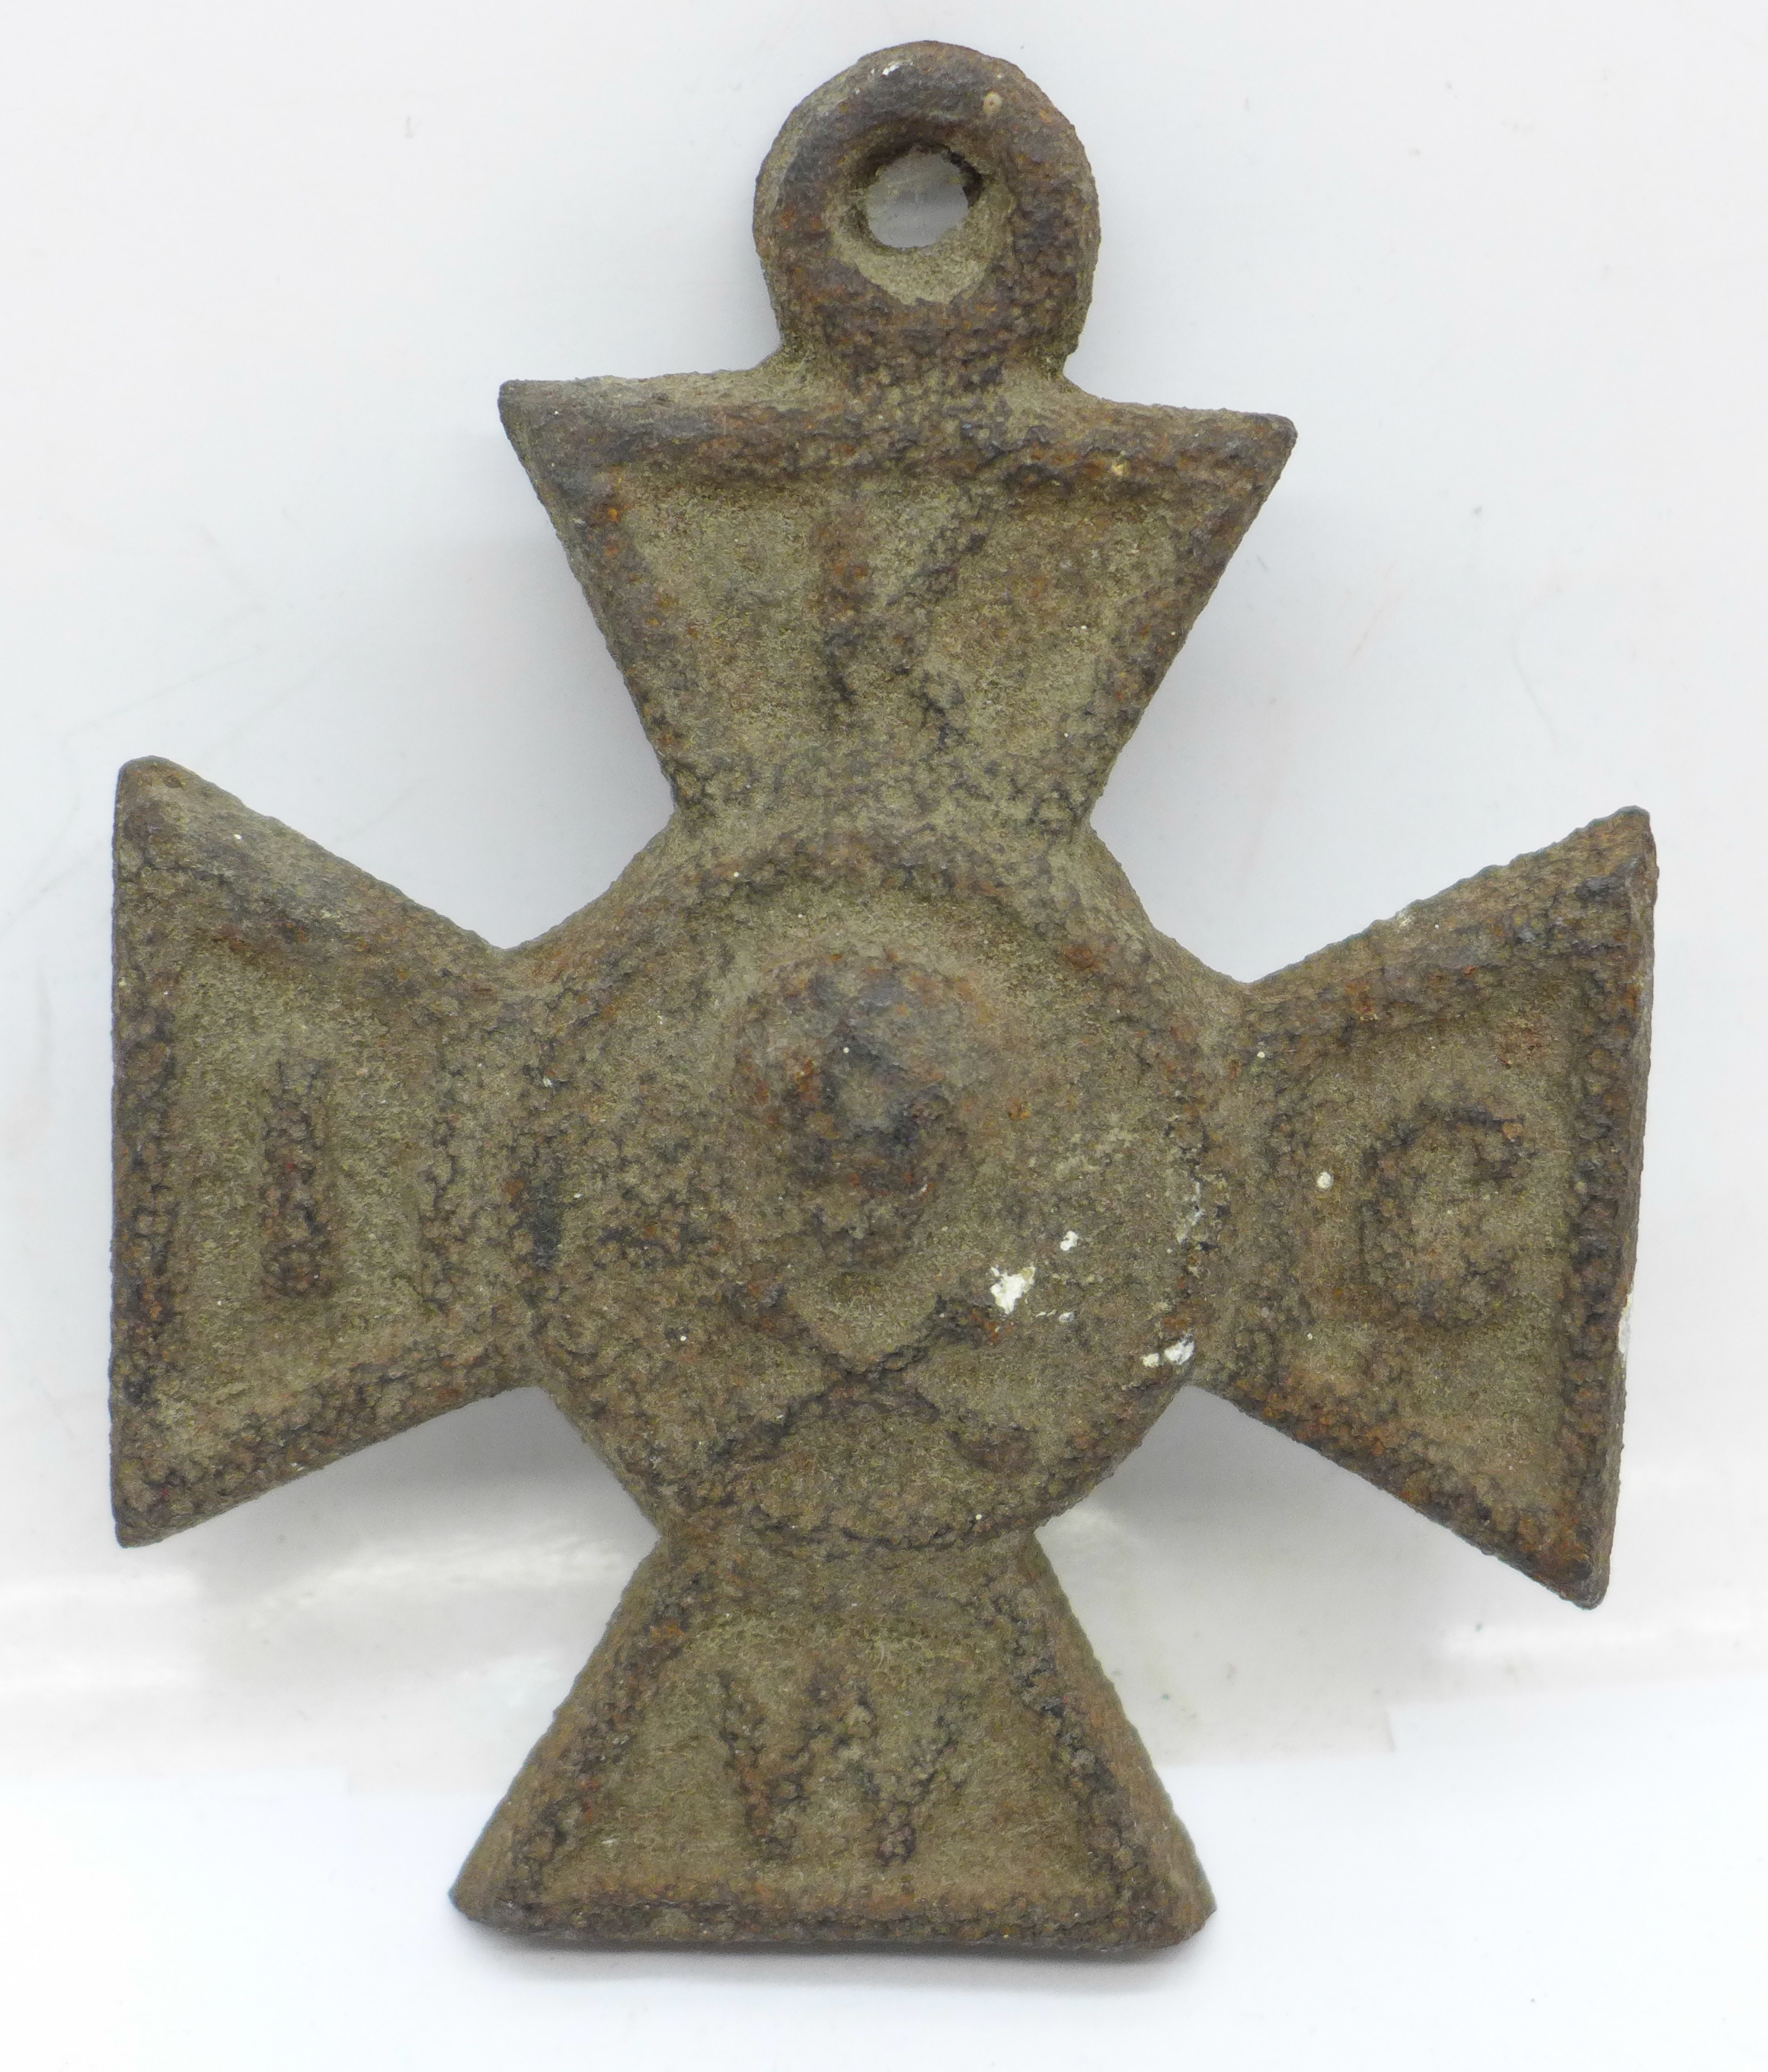 A cast metal cross with skull and crossbones, 10cm